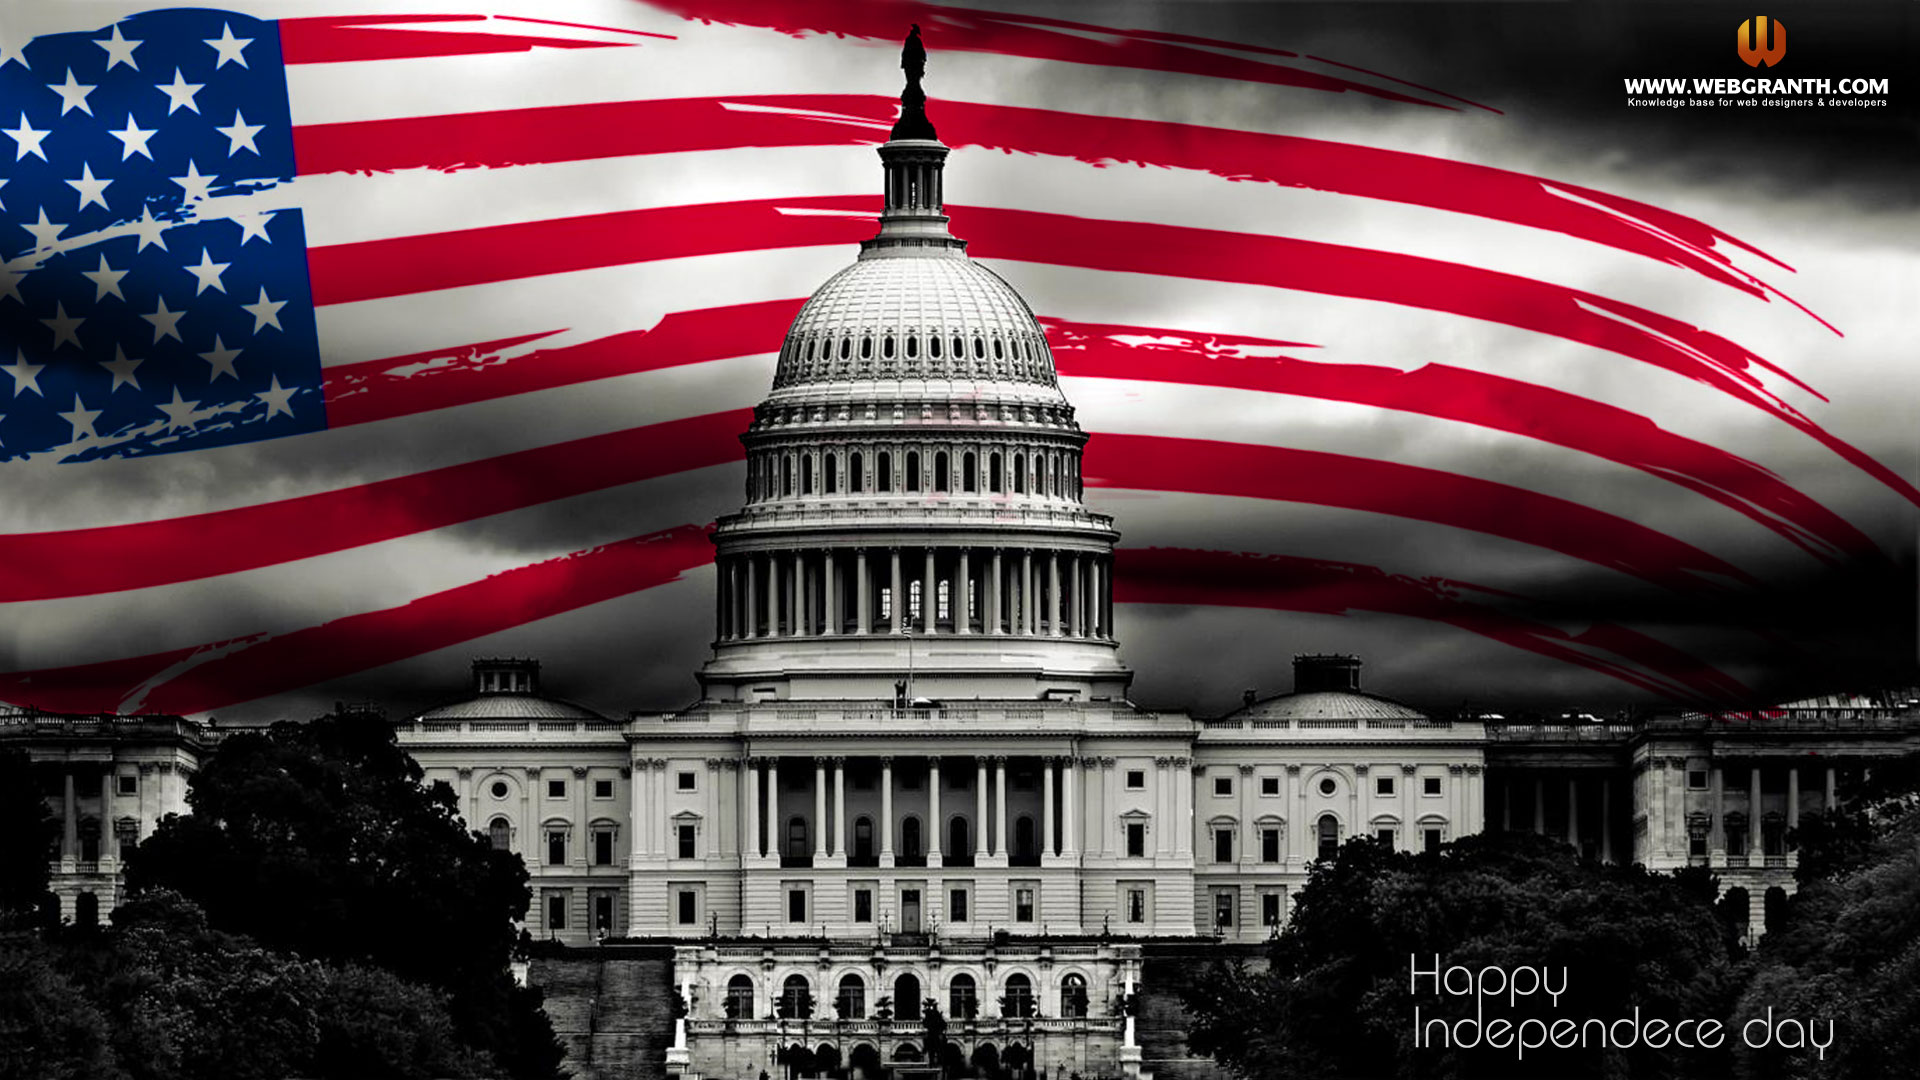 US Independence day wallpaper and 4th of July WallpapersDesktop 1920x1080